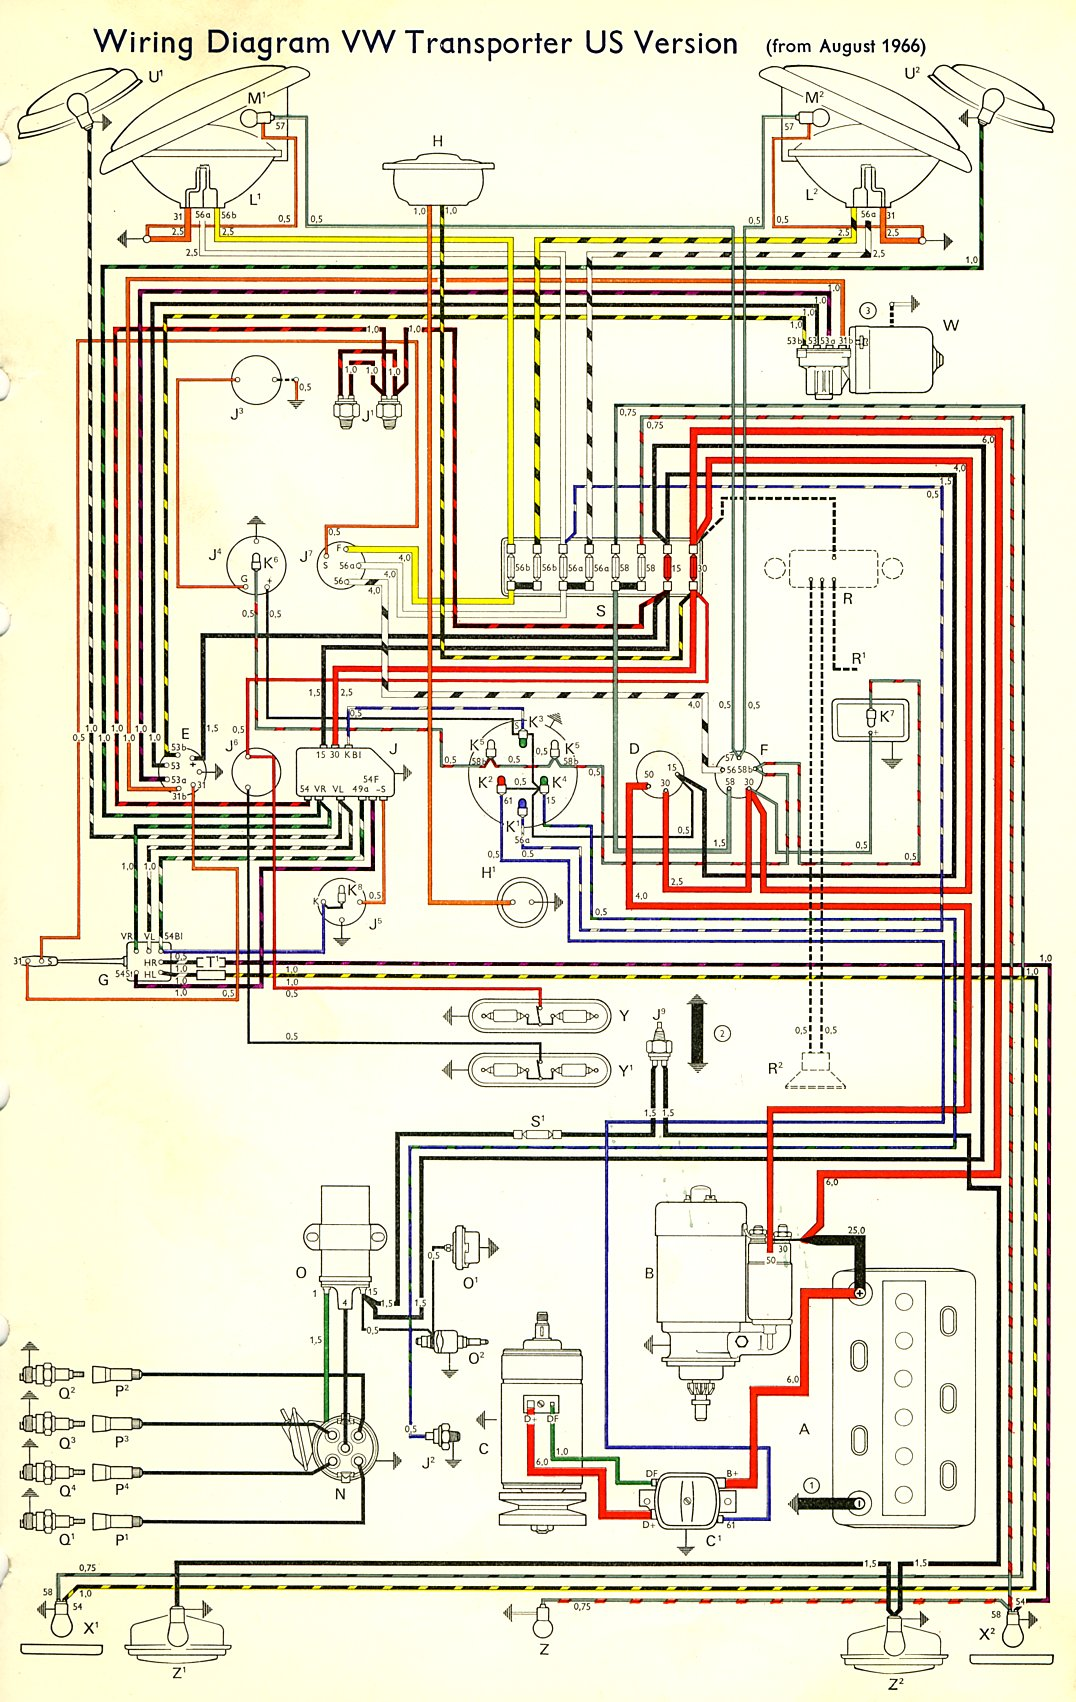 Oliver 66 Wiring Diagram | Wiring Diagram on oliver ignition diagram, oliver parts diagram, oliver tractor,